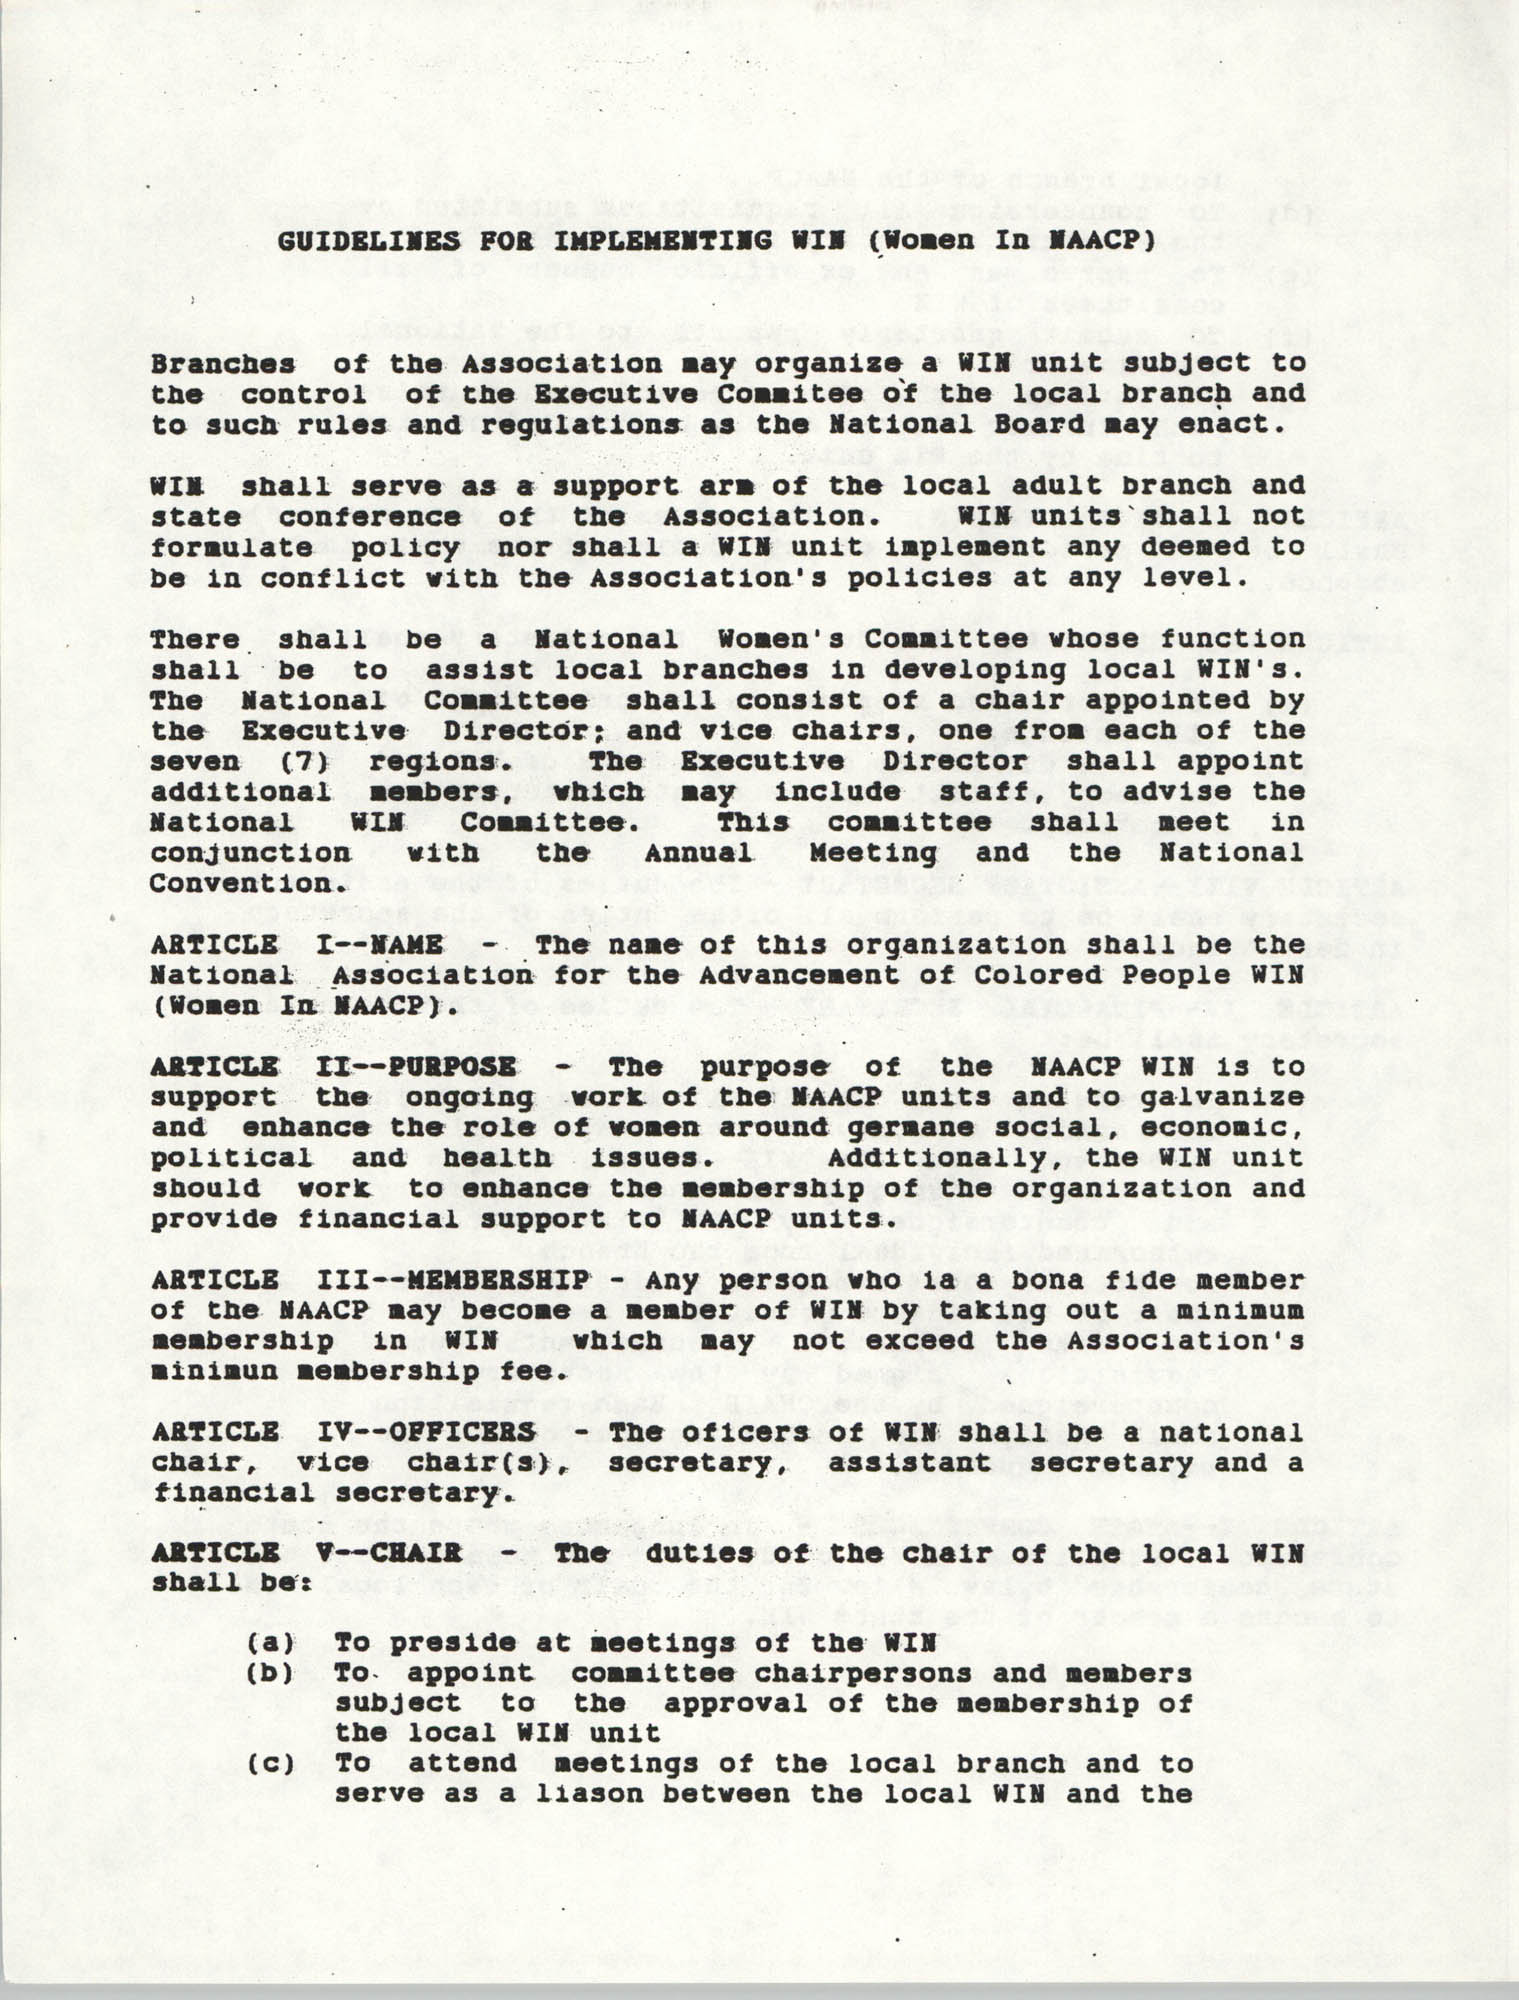 Guidelines for Implementing WIN (Women In NAACP), Page 1